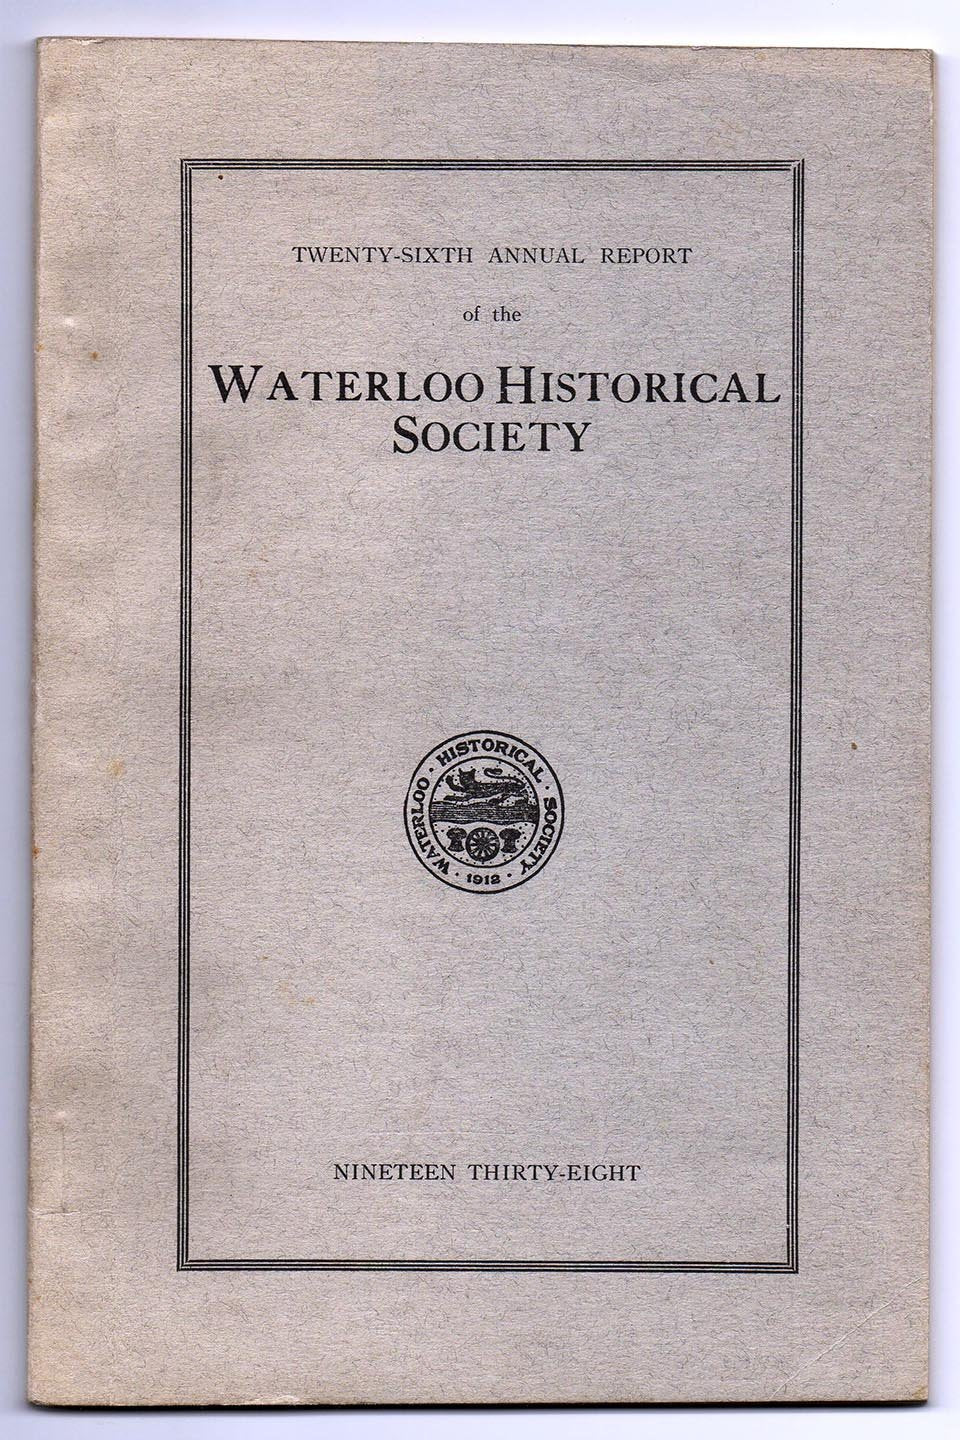 Twenty-sixth Annual Report of the Waterloo Historical Society, 1938